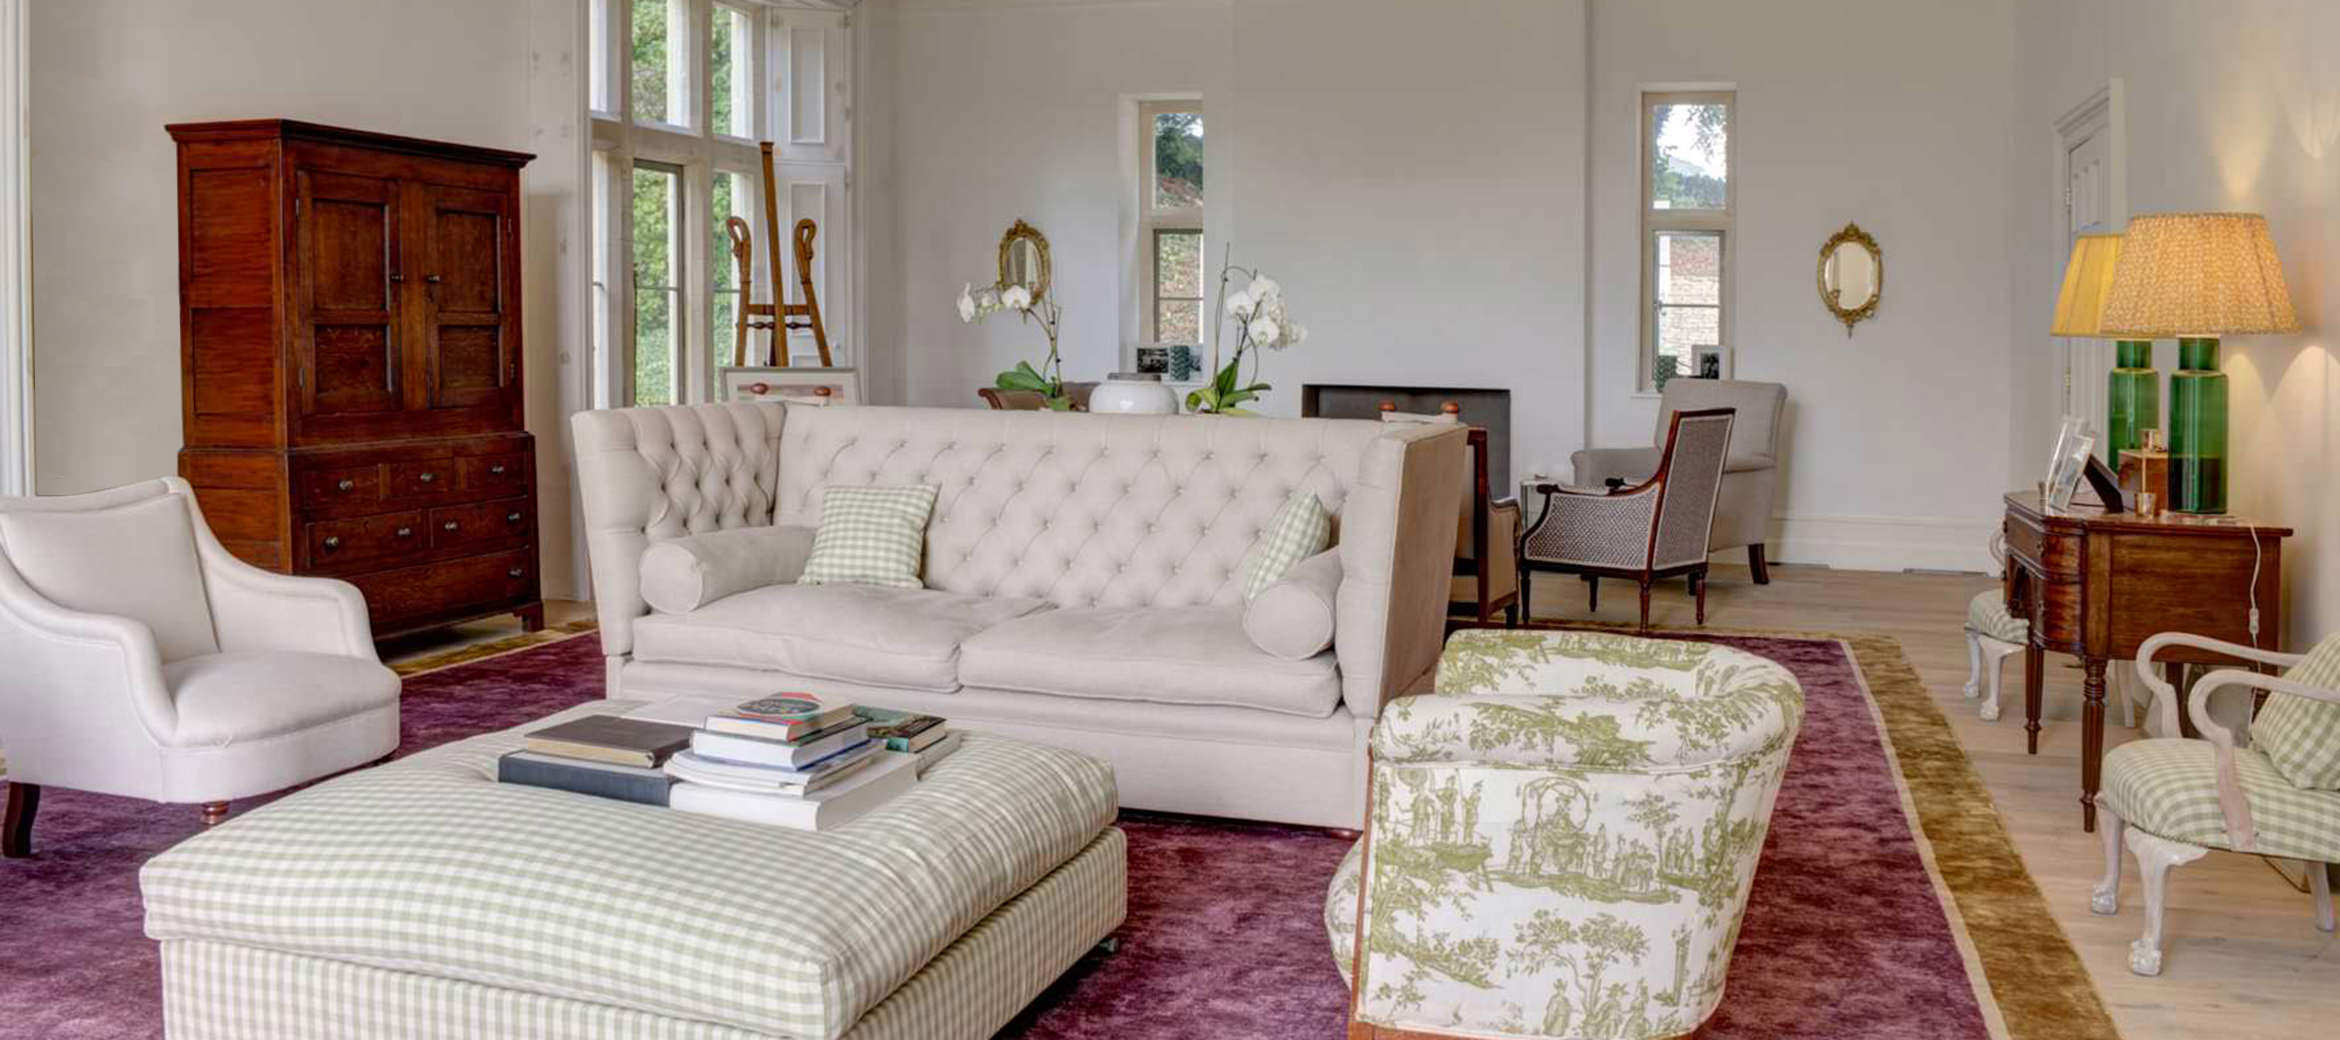 luxury-cotswold-august-house-1049-lcr-rev